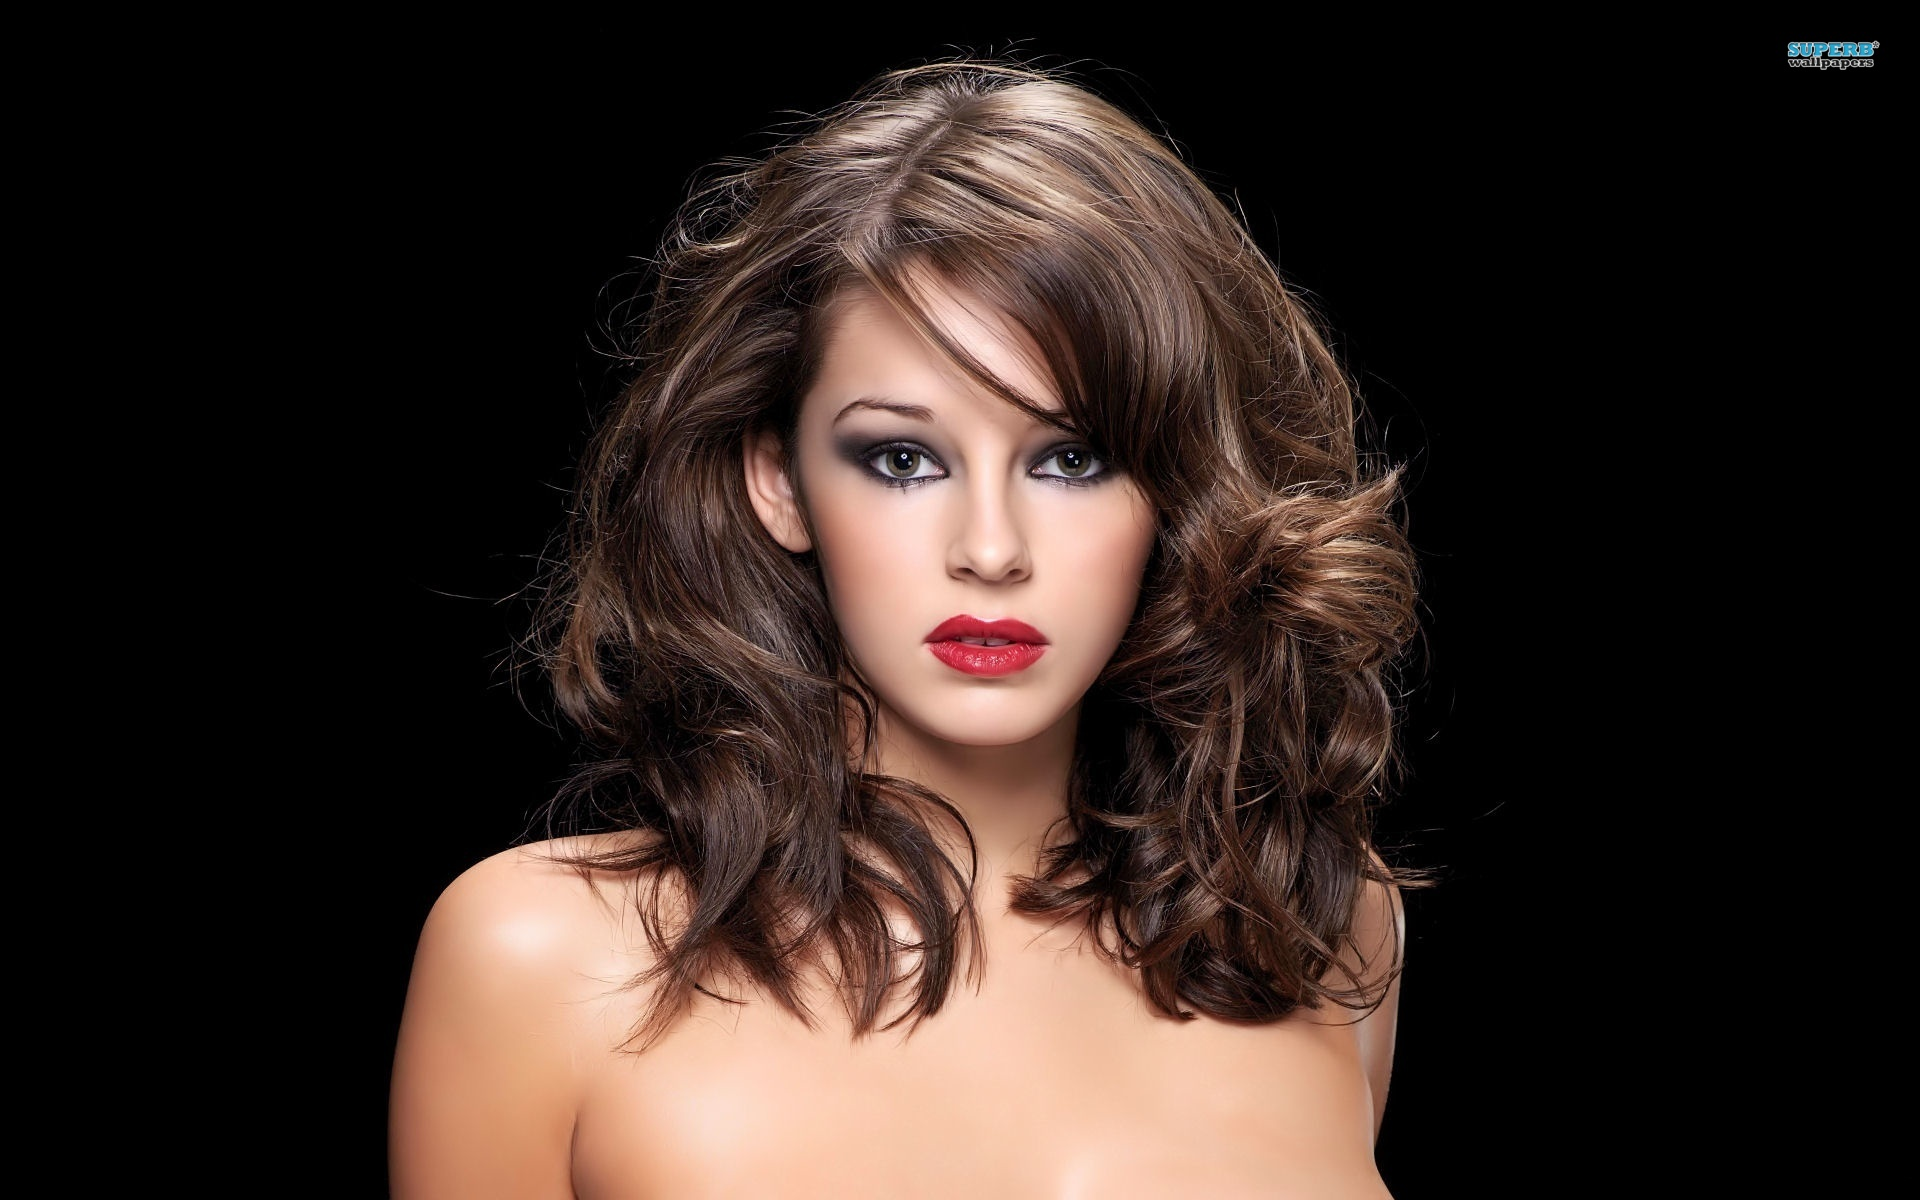 keeley hazell downloads backgrounds - photo #7